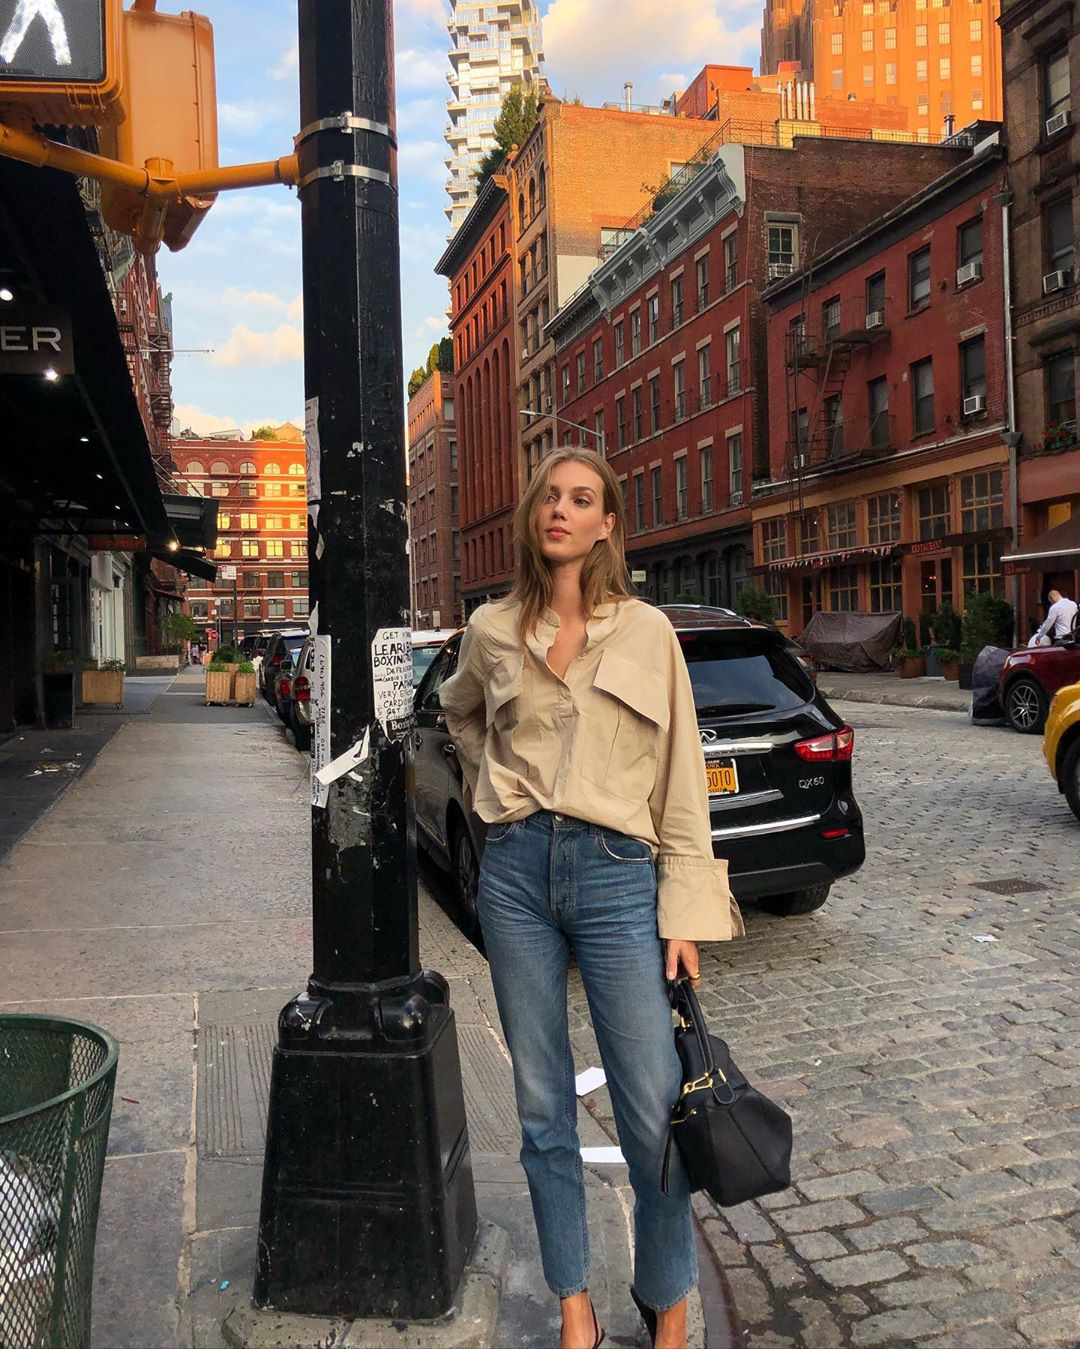 Transitional Chic Fall Outfit - Cecilie Moosgaard Nielsen in button-down shirt and denim jeans